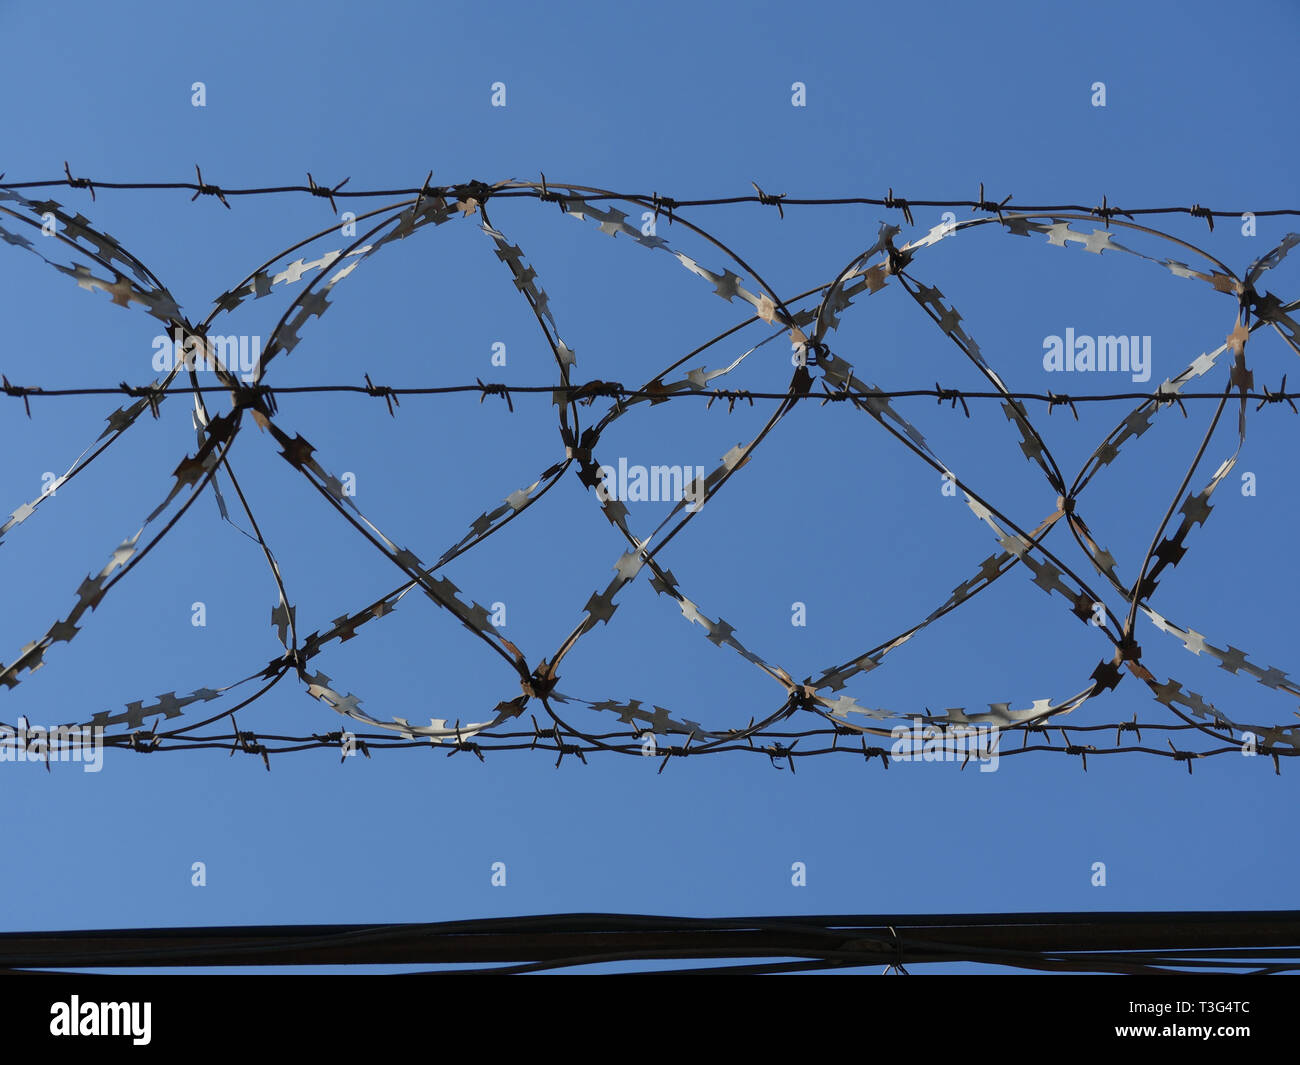 Barbed wire fence in the blue sky - Stock Image